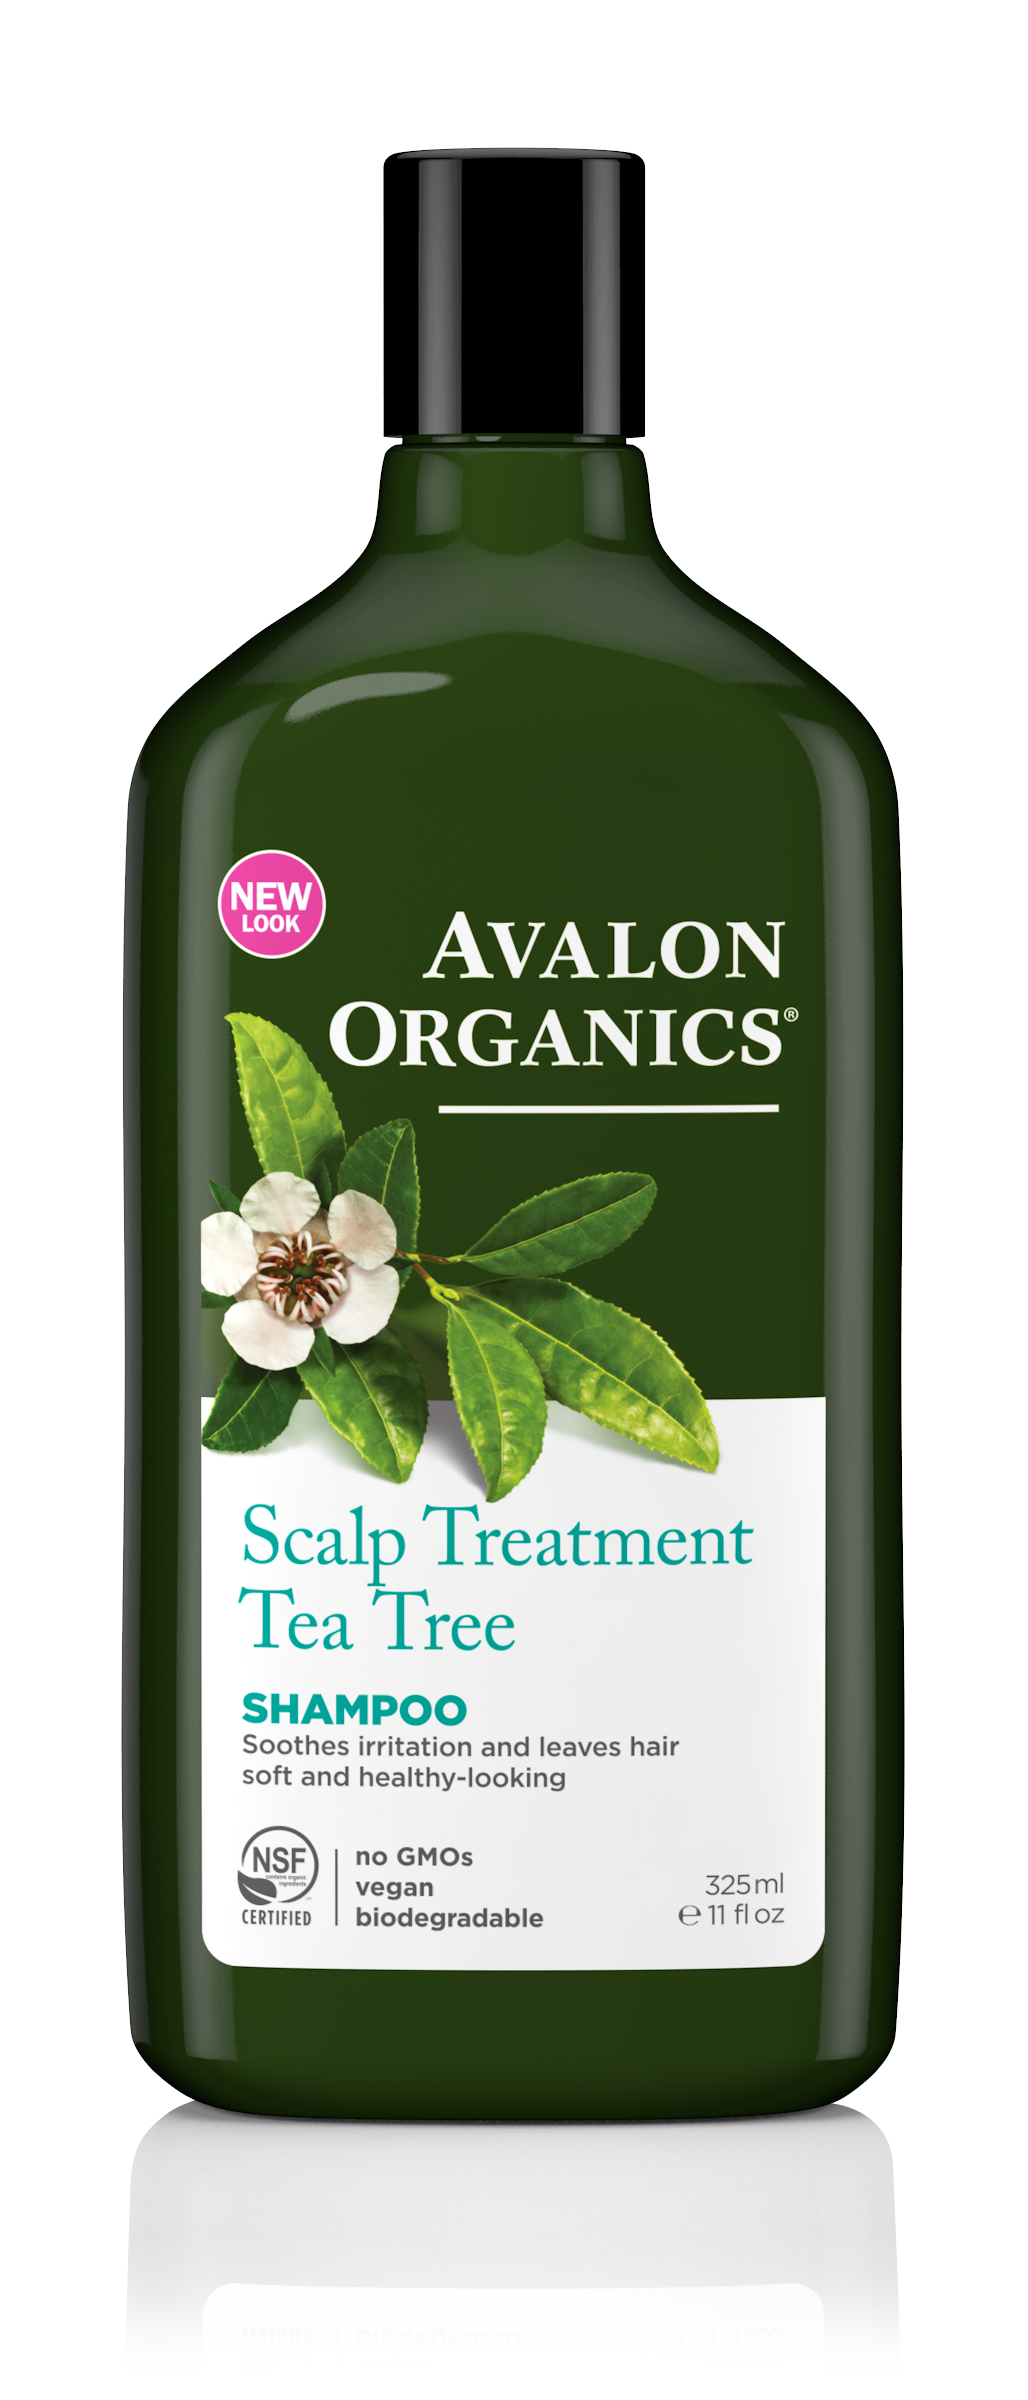 Avalon Organics Tea Tree Shampoo